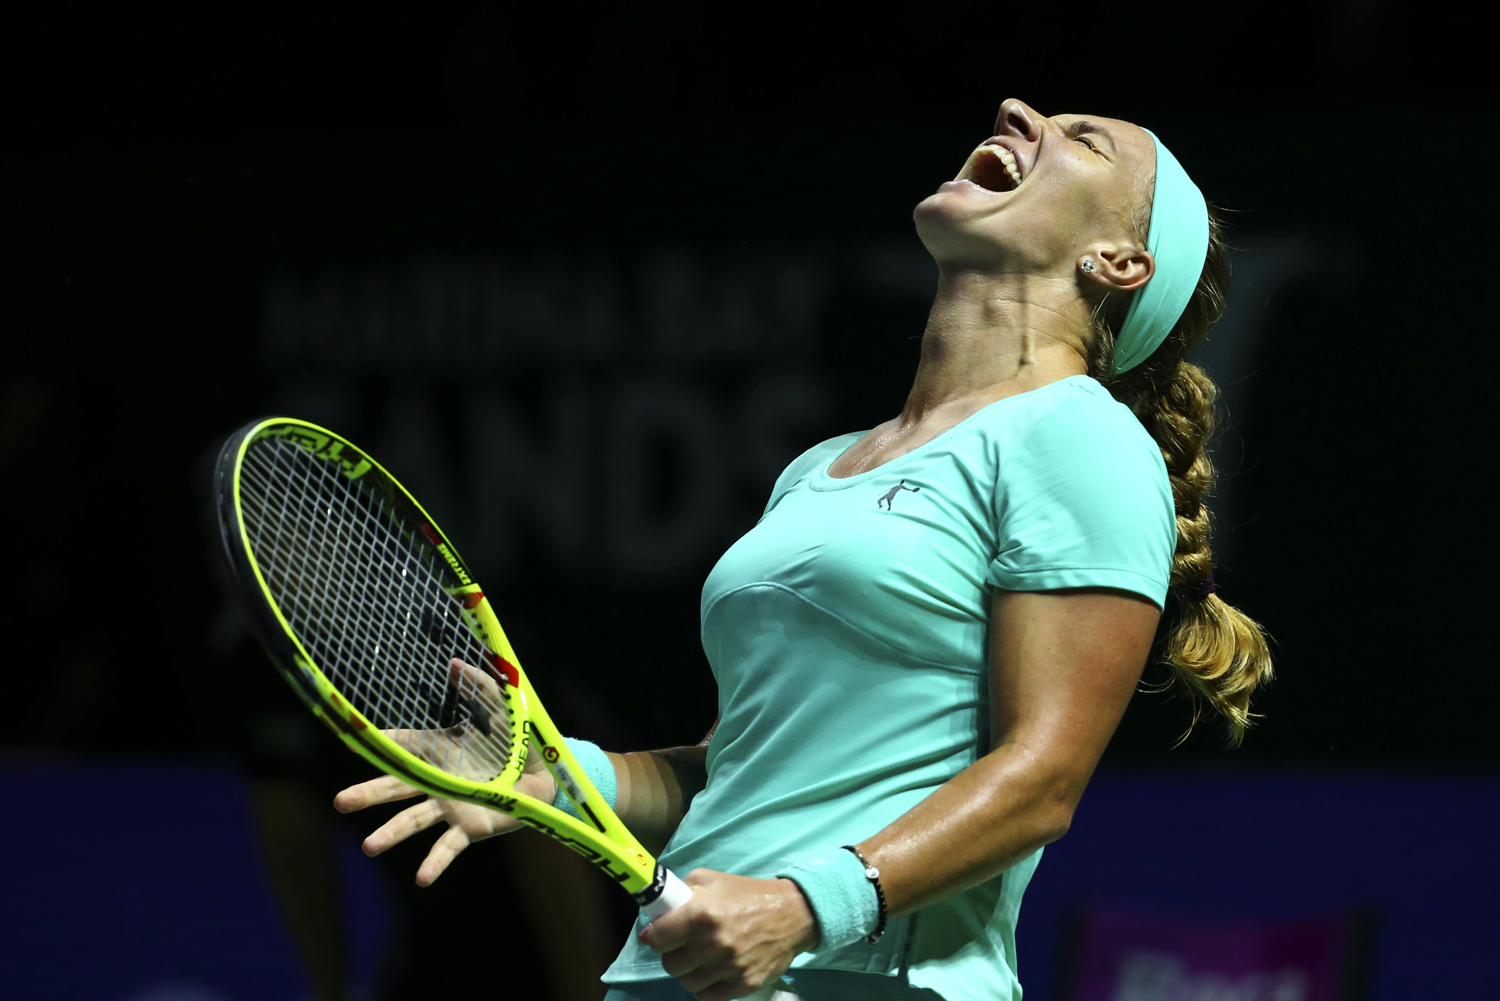 Tennis - BNP Paribas WTA Finals - Singapore Indoor Stadium - 24/10/16 Russia's Svetlana Kuznetsova reacts during her round robin match Mandatory Credit: Action Images / Yong Teck Lim Livepic EDITORIAL USE ONLY.